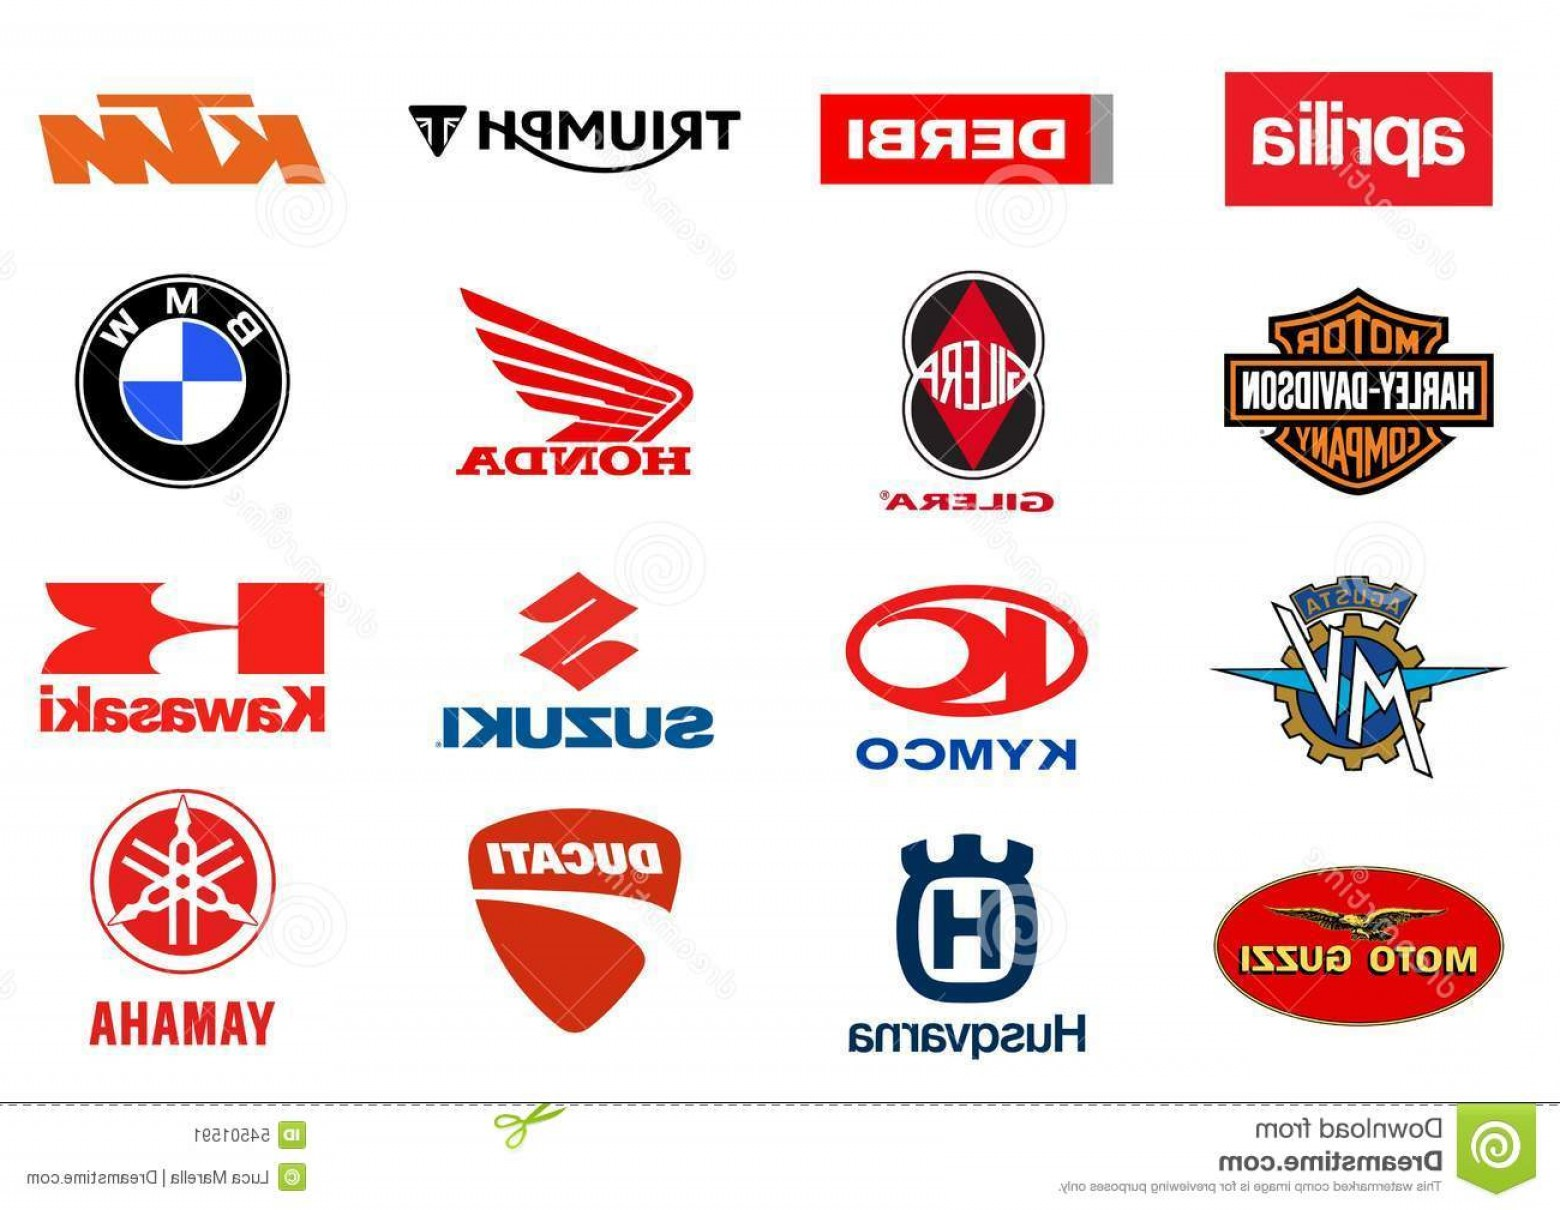 The World Vector Logos Of Brands: Editorial Photo Motorcycles Producers Logos Vector Major World Additional Vector File Available Single Elements Usage Image